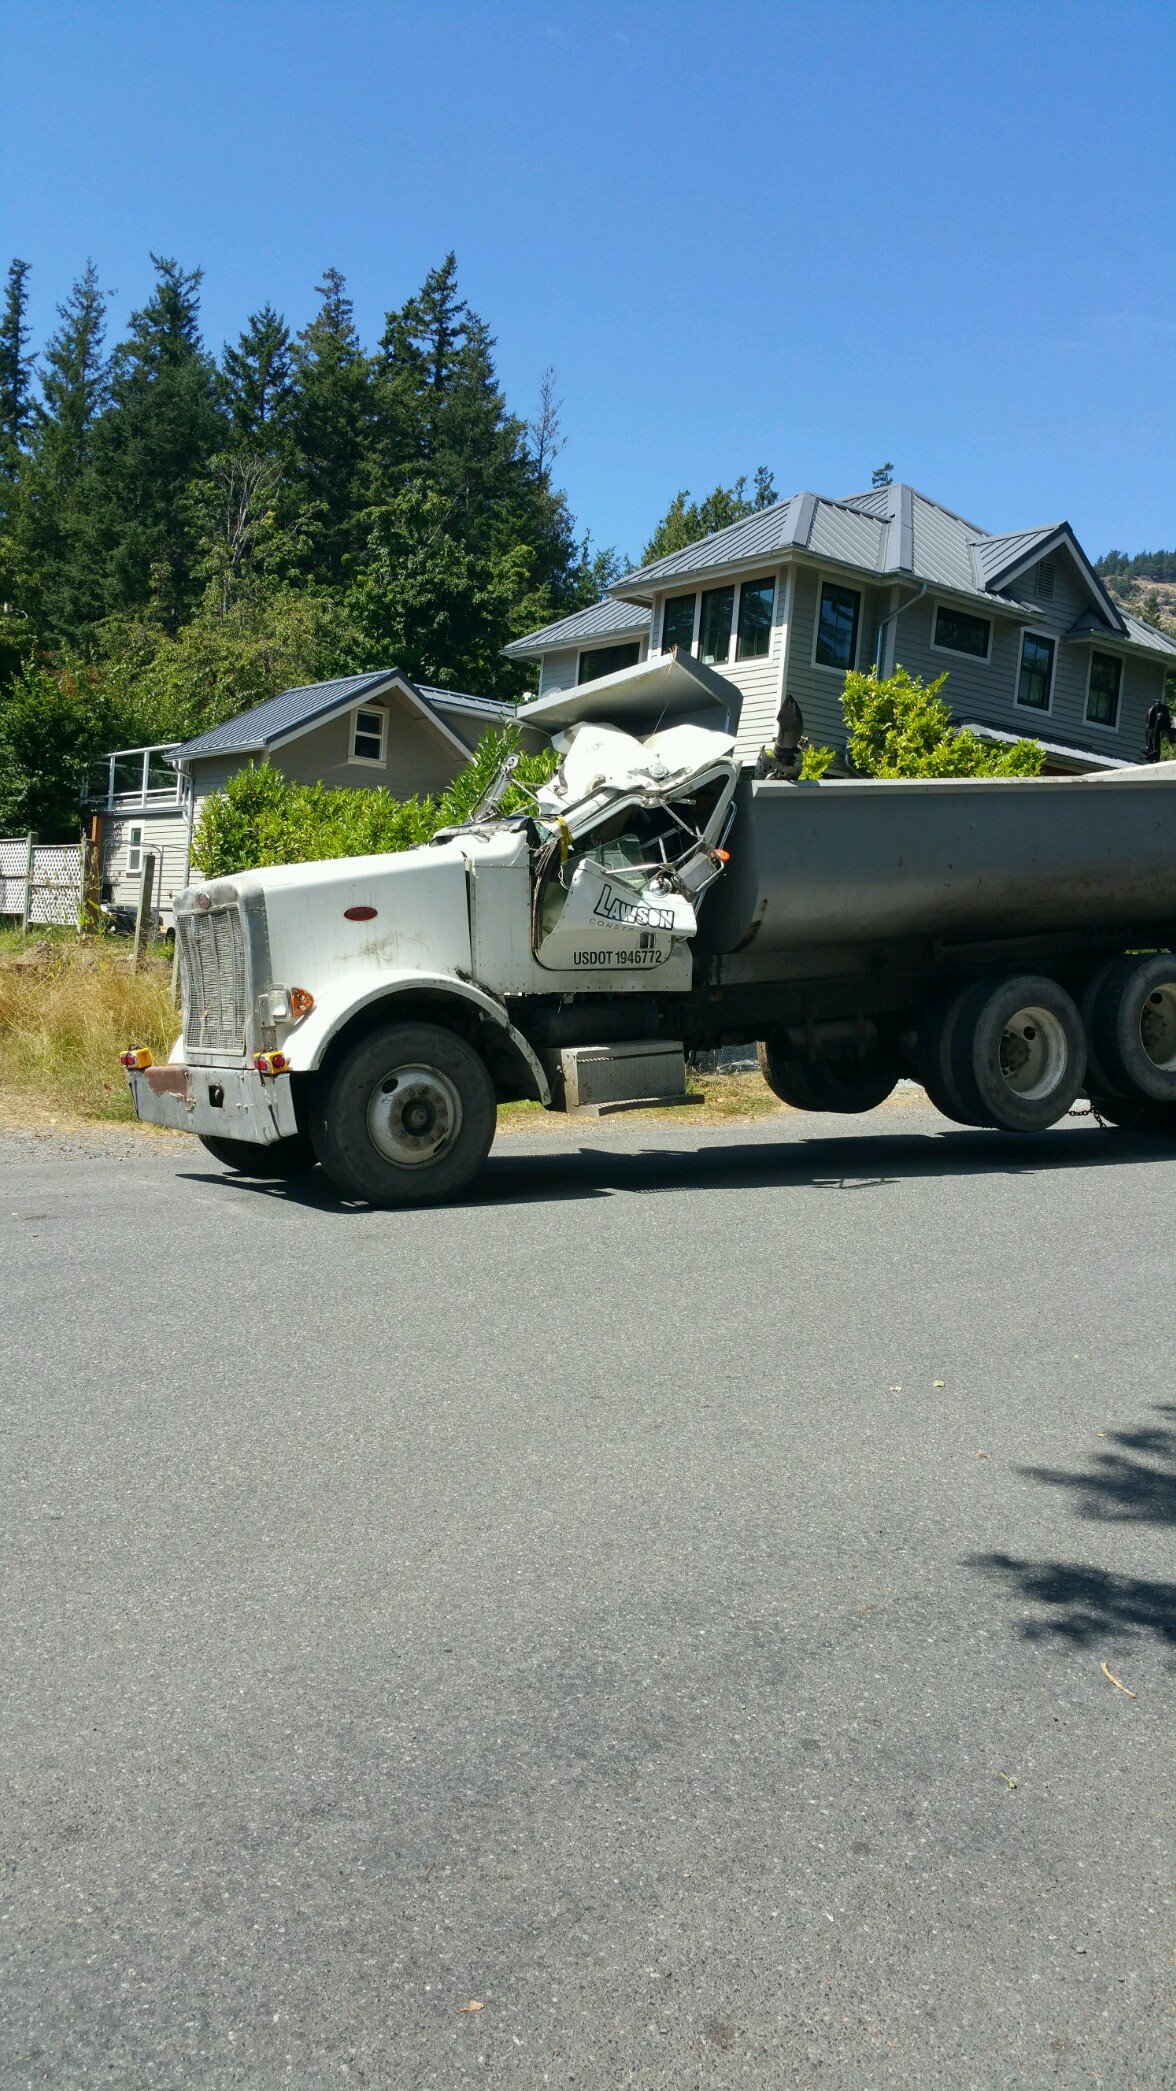 A dump truck owned by a local construction company reportedly rolled over and slid into a house Tuesday morning in the Olga area of Orcas Island, according to the San Juan County Sheriff's Office. (Photo: KOMO NEWS)